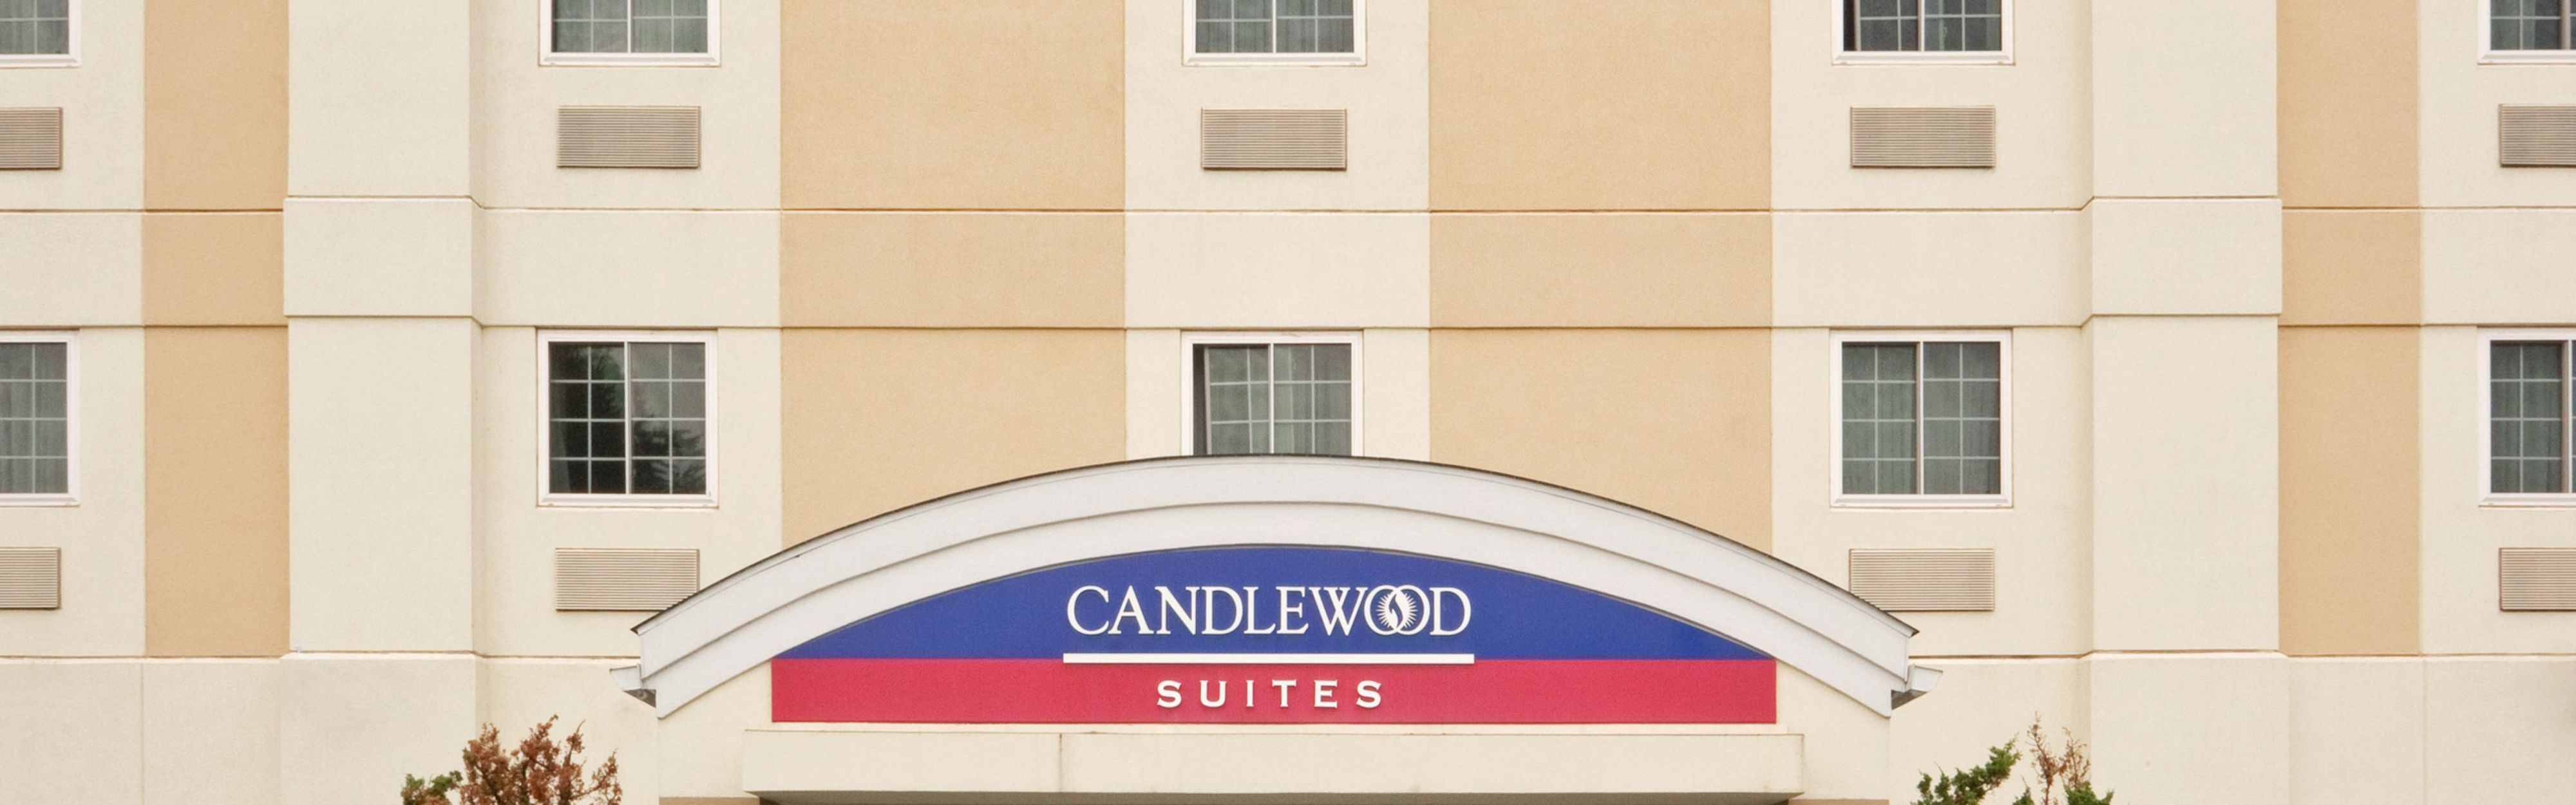 Candlewood Suites West Springfield image 0